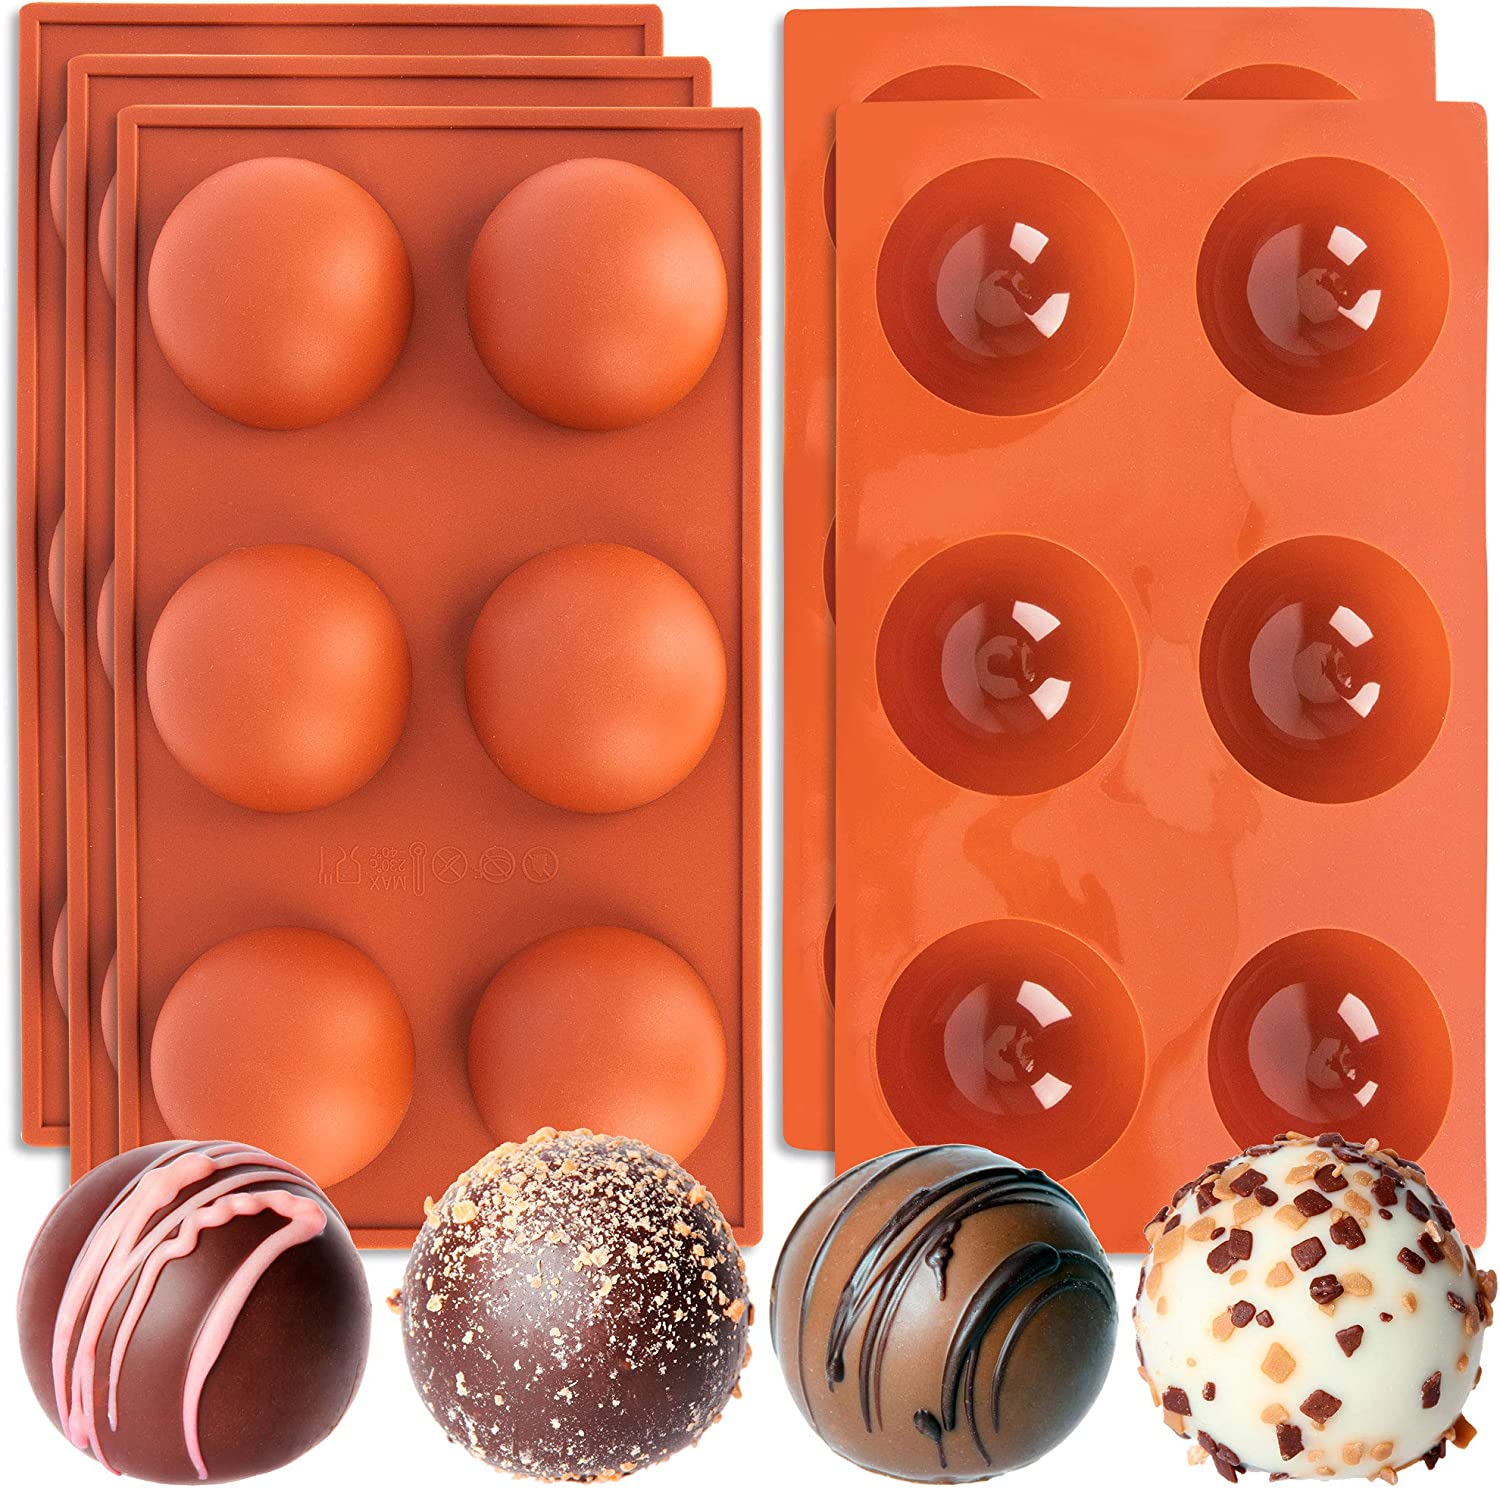 Rictex 6 Holes Silicone Molds for Chocolate Bombs, Silicone Baking Mold for Chocolate, Cake, Jelly, Pudding, Handmade Soap, Round Shape. 5 PACK